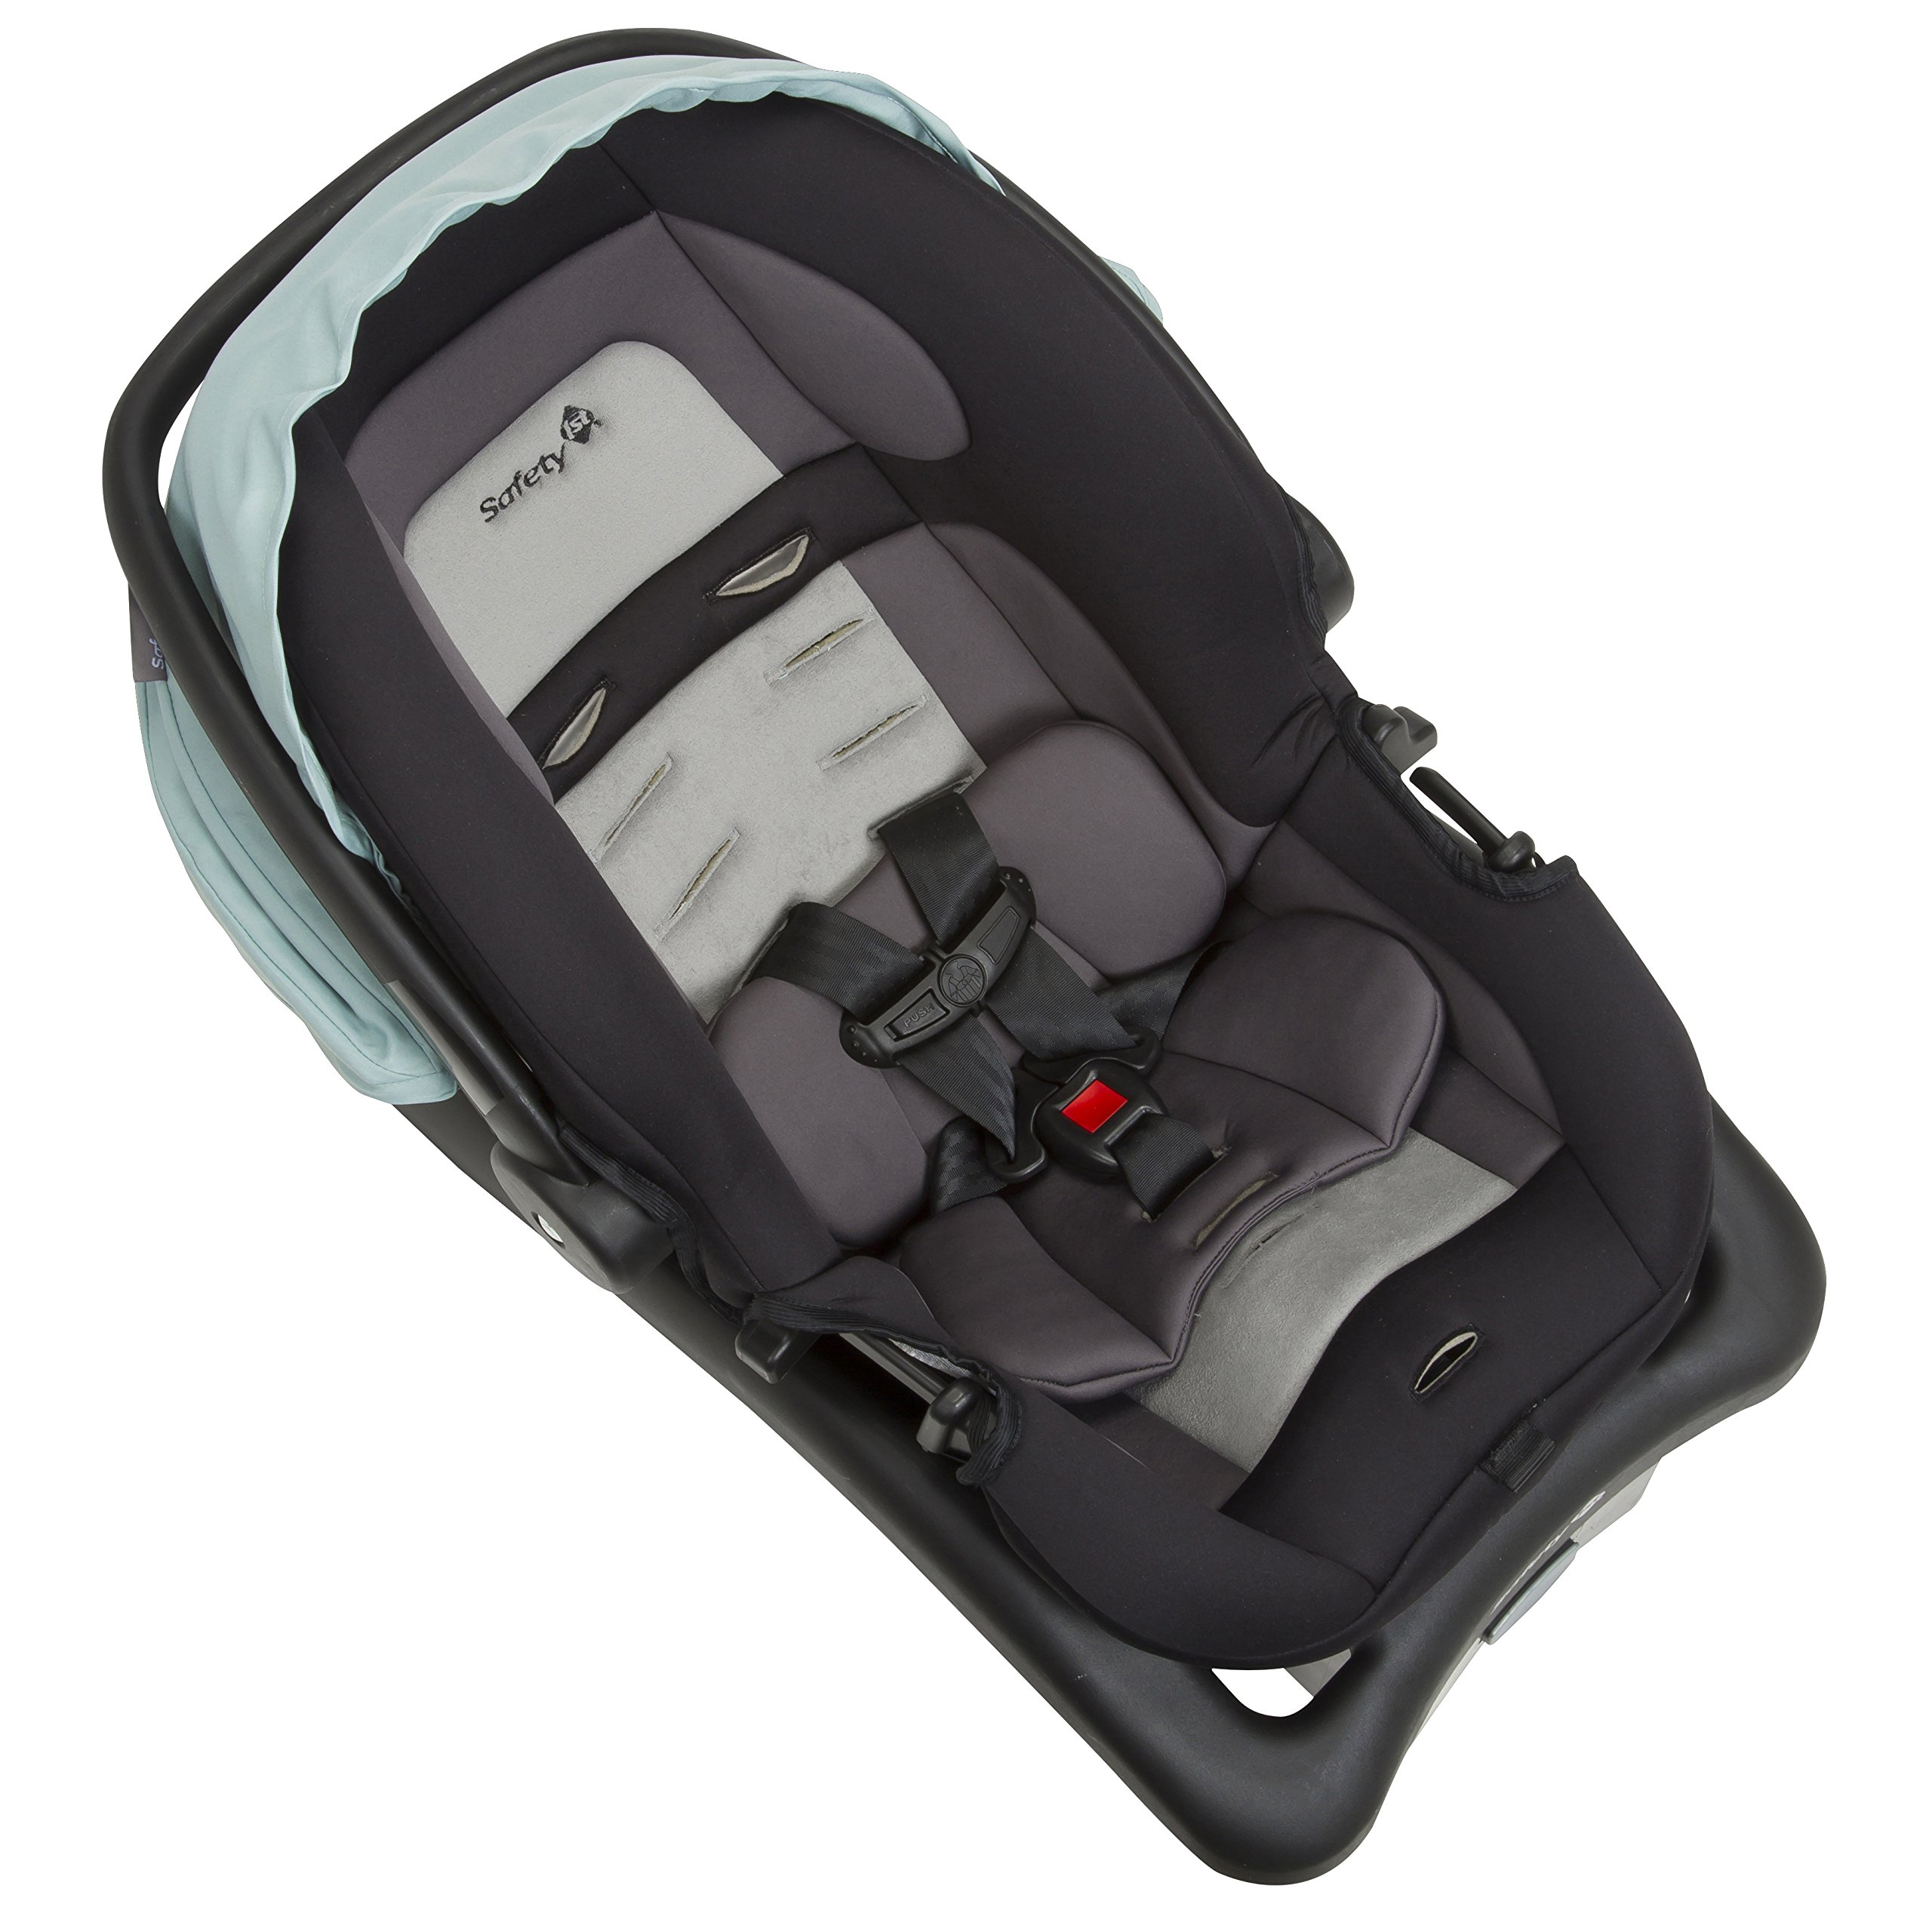 Safety 1st onBoard 35 LT Infant Car Seat, Juniper Pop by Safety 1st (Image #8)